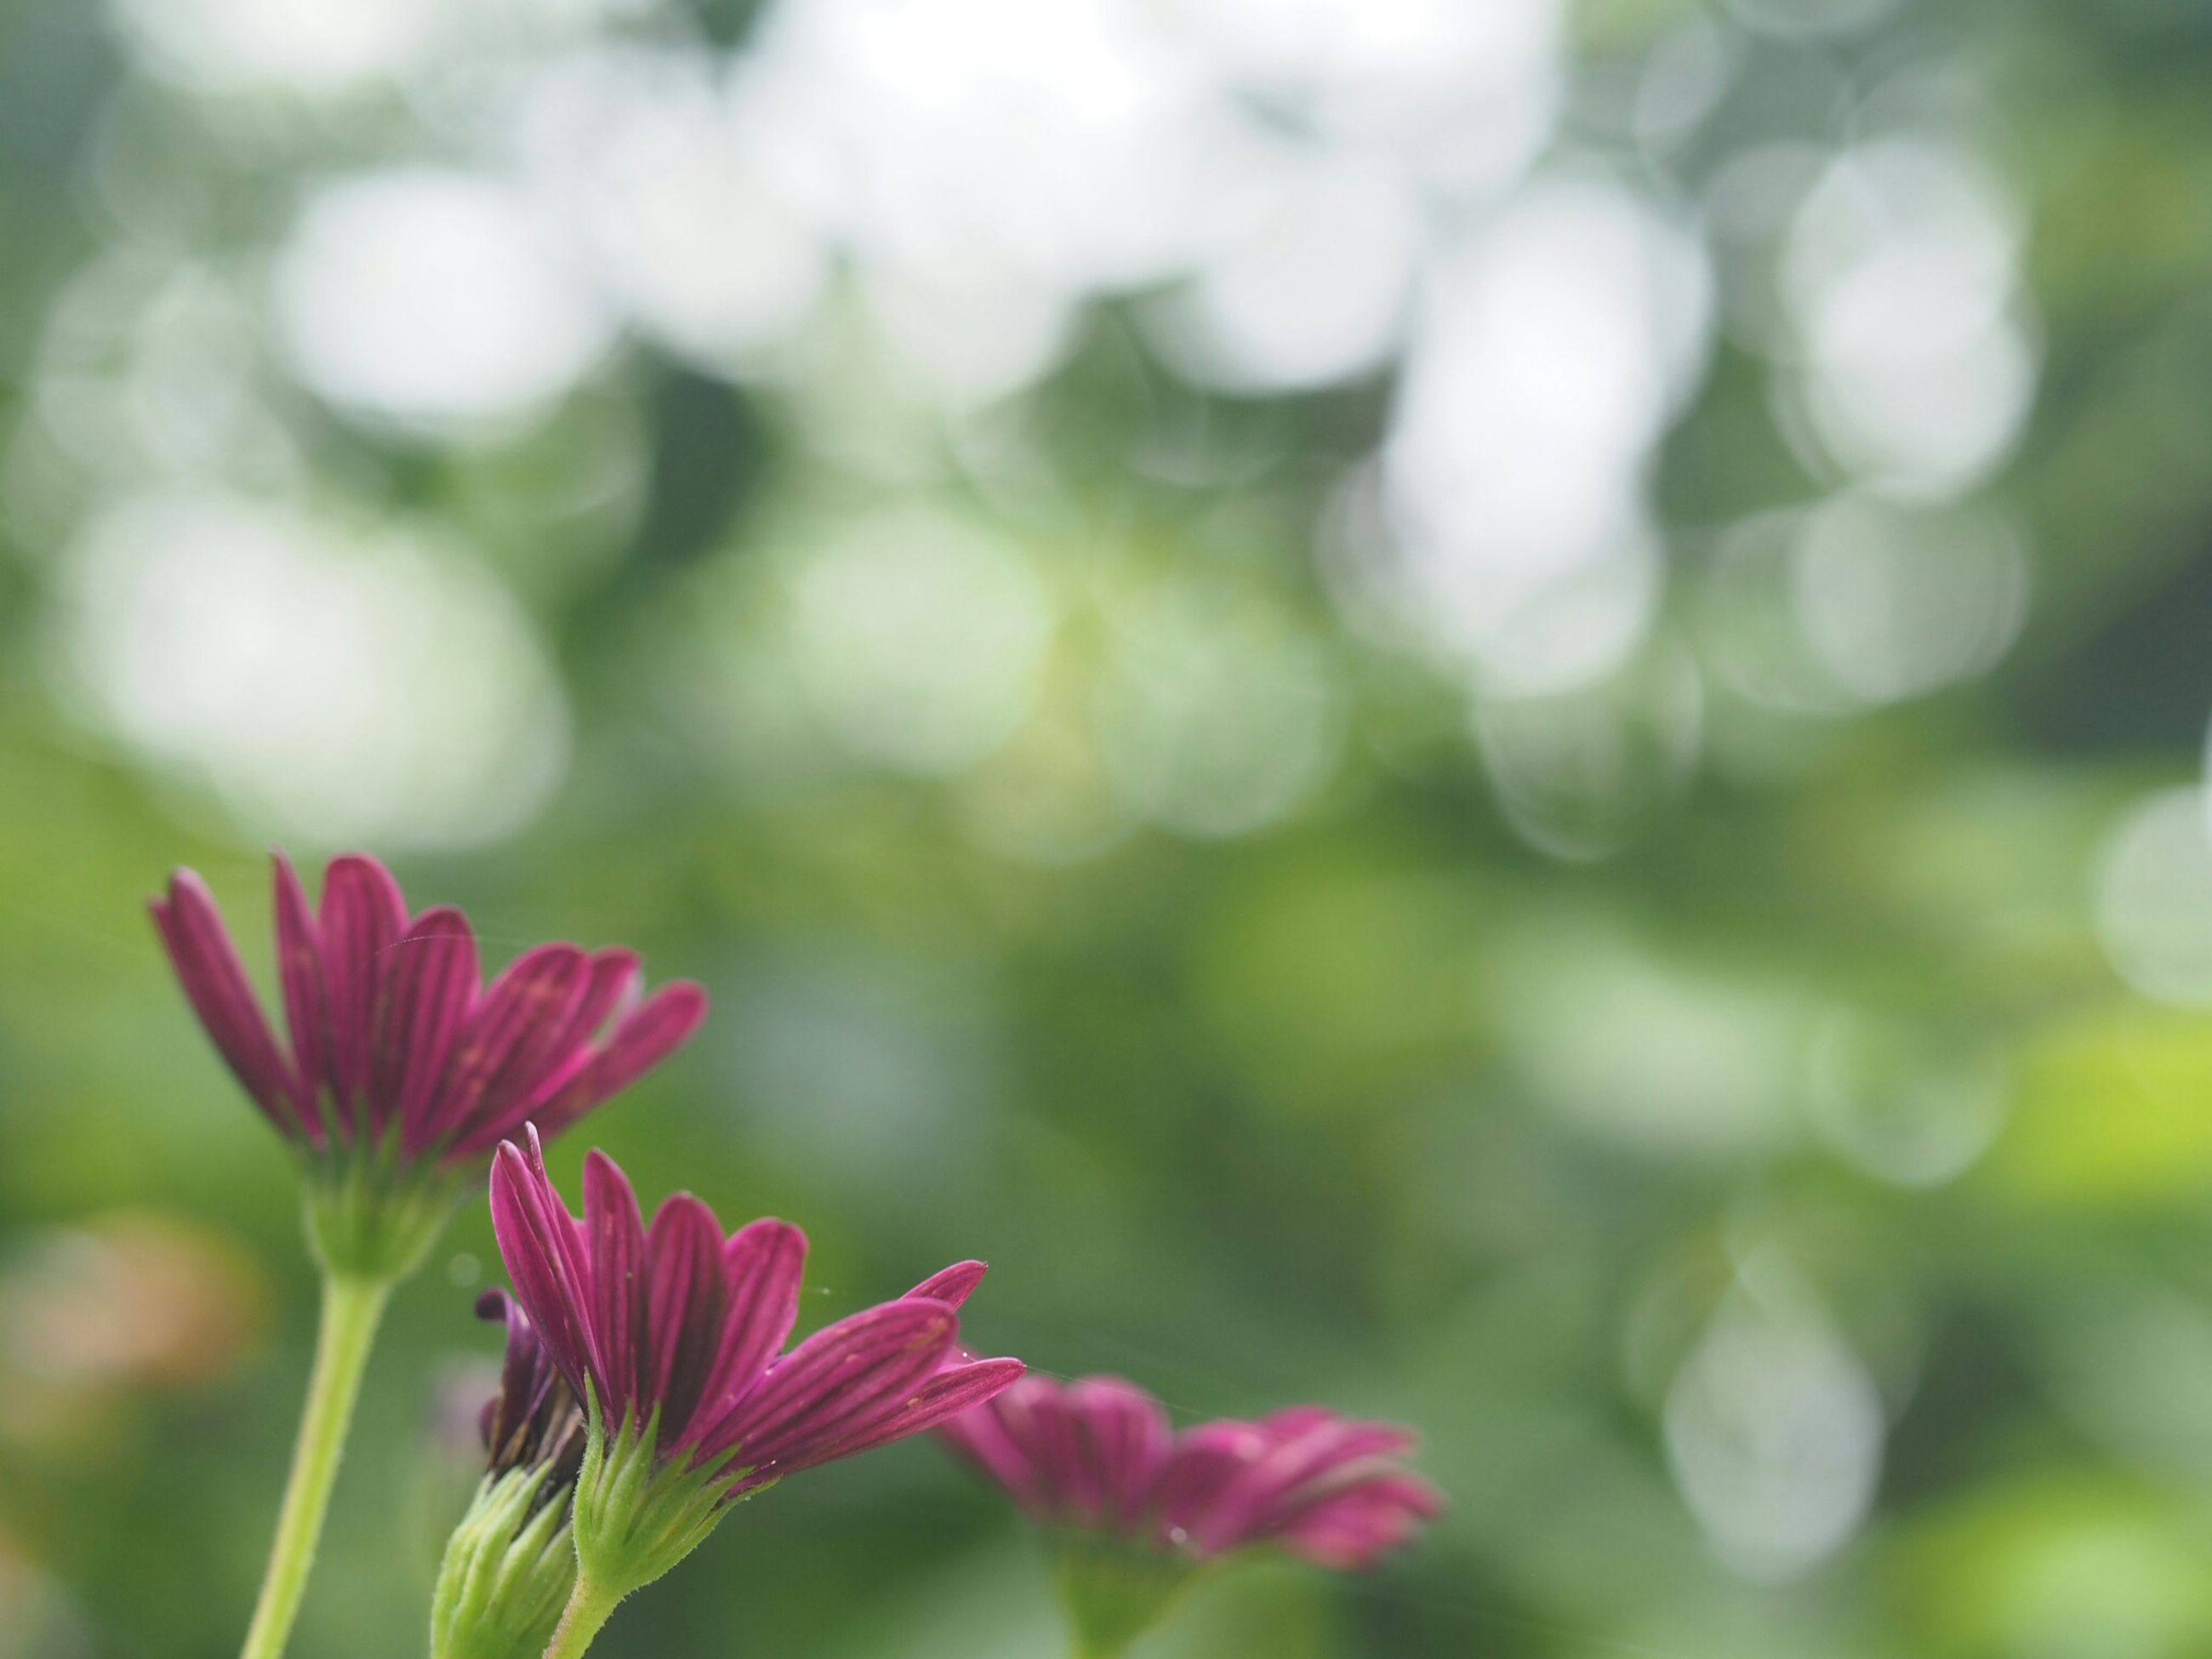 flower, focus on foreground, freshness, fragility, growth, petal, beauty in nature, close-up, flower head, nature, blooming, plant, pink color, stem, selective focus, in bloom, park - man made space, outdoors, day, bud